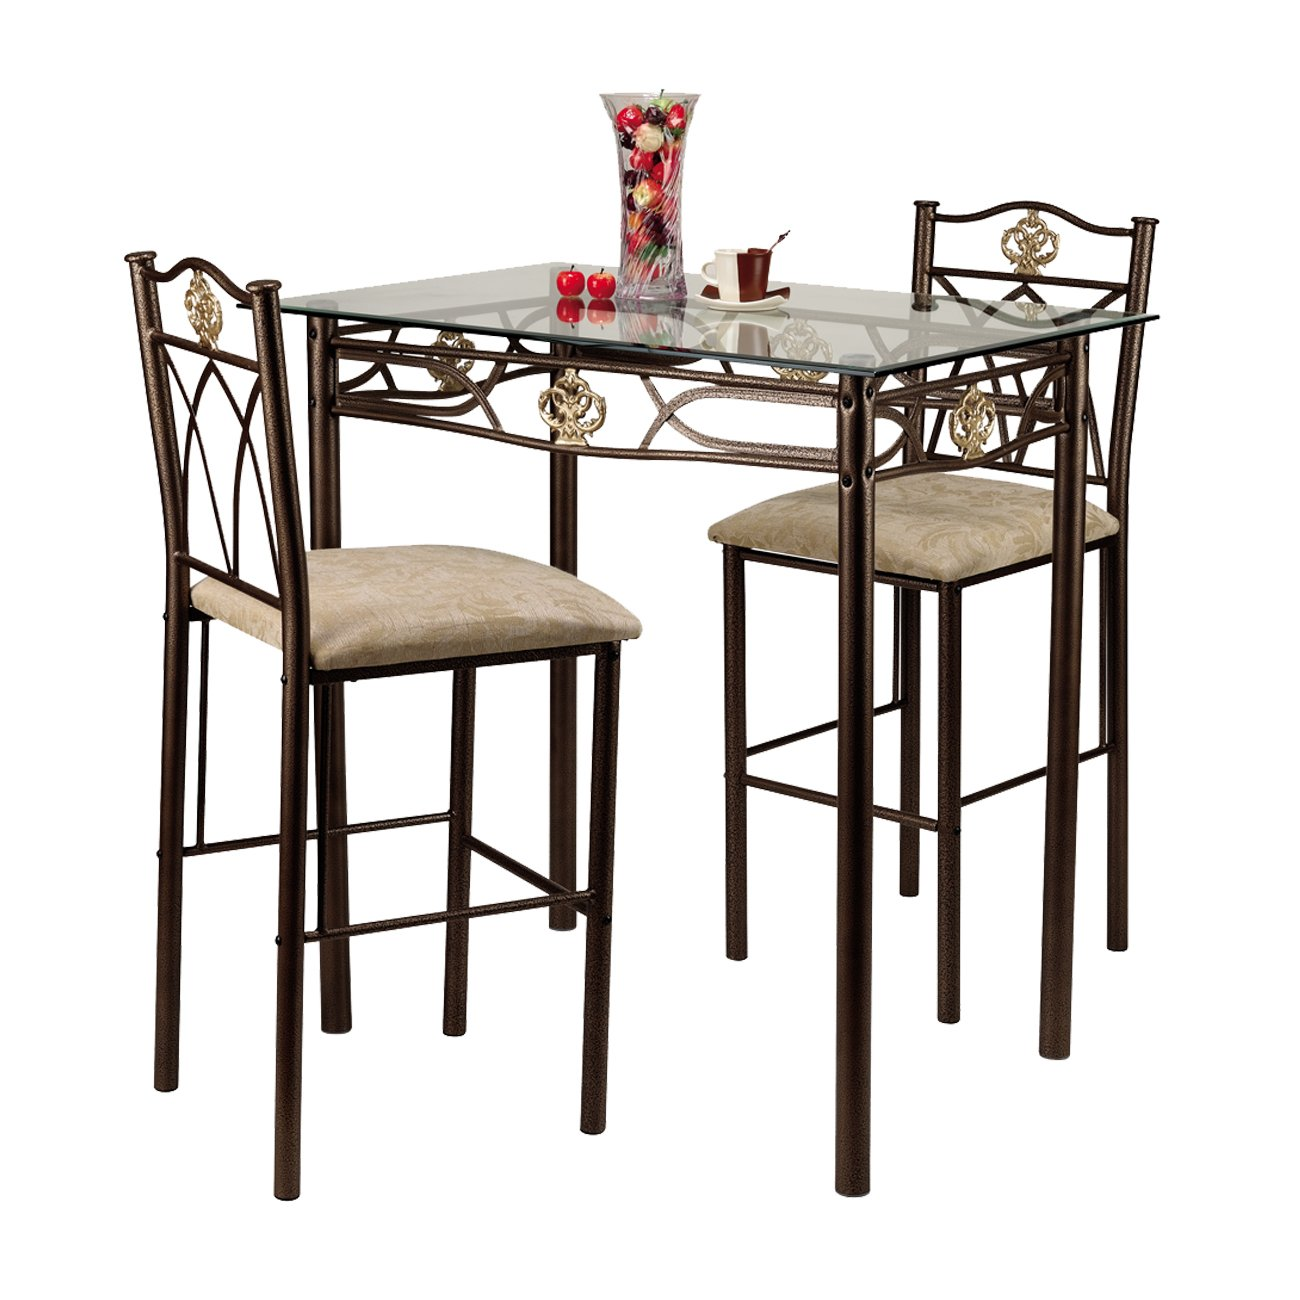 Glass Pub Table Part - 38: Amazon.com: Home Source Industries Crown Bistro 3-Piece Dining Set With Glass  Table Top And 2 Chairs: Kitchen U0026 Dining